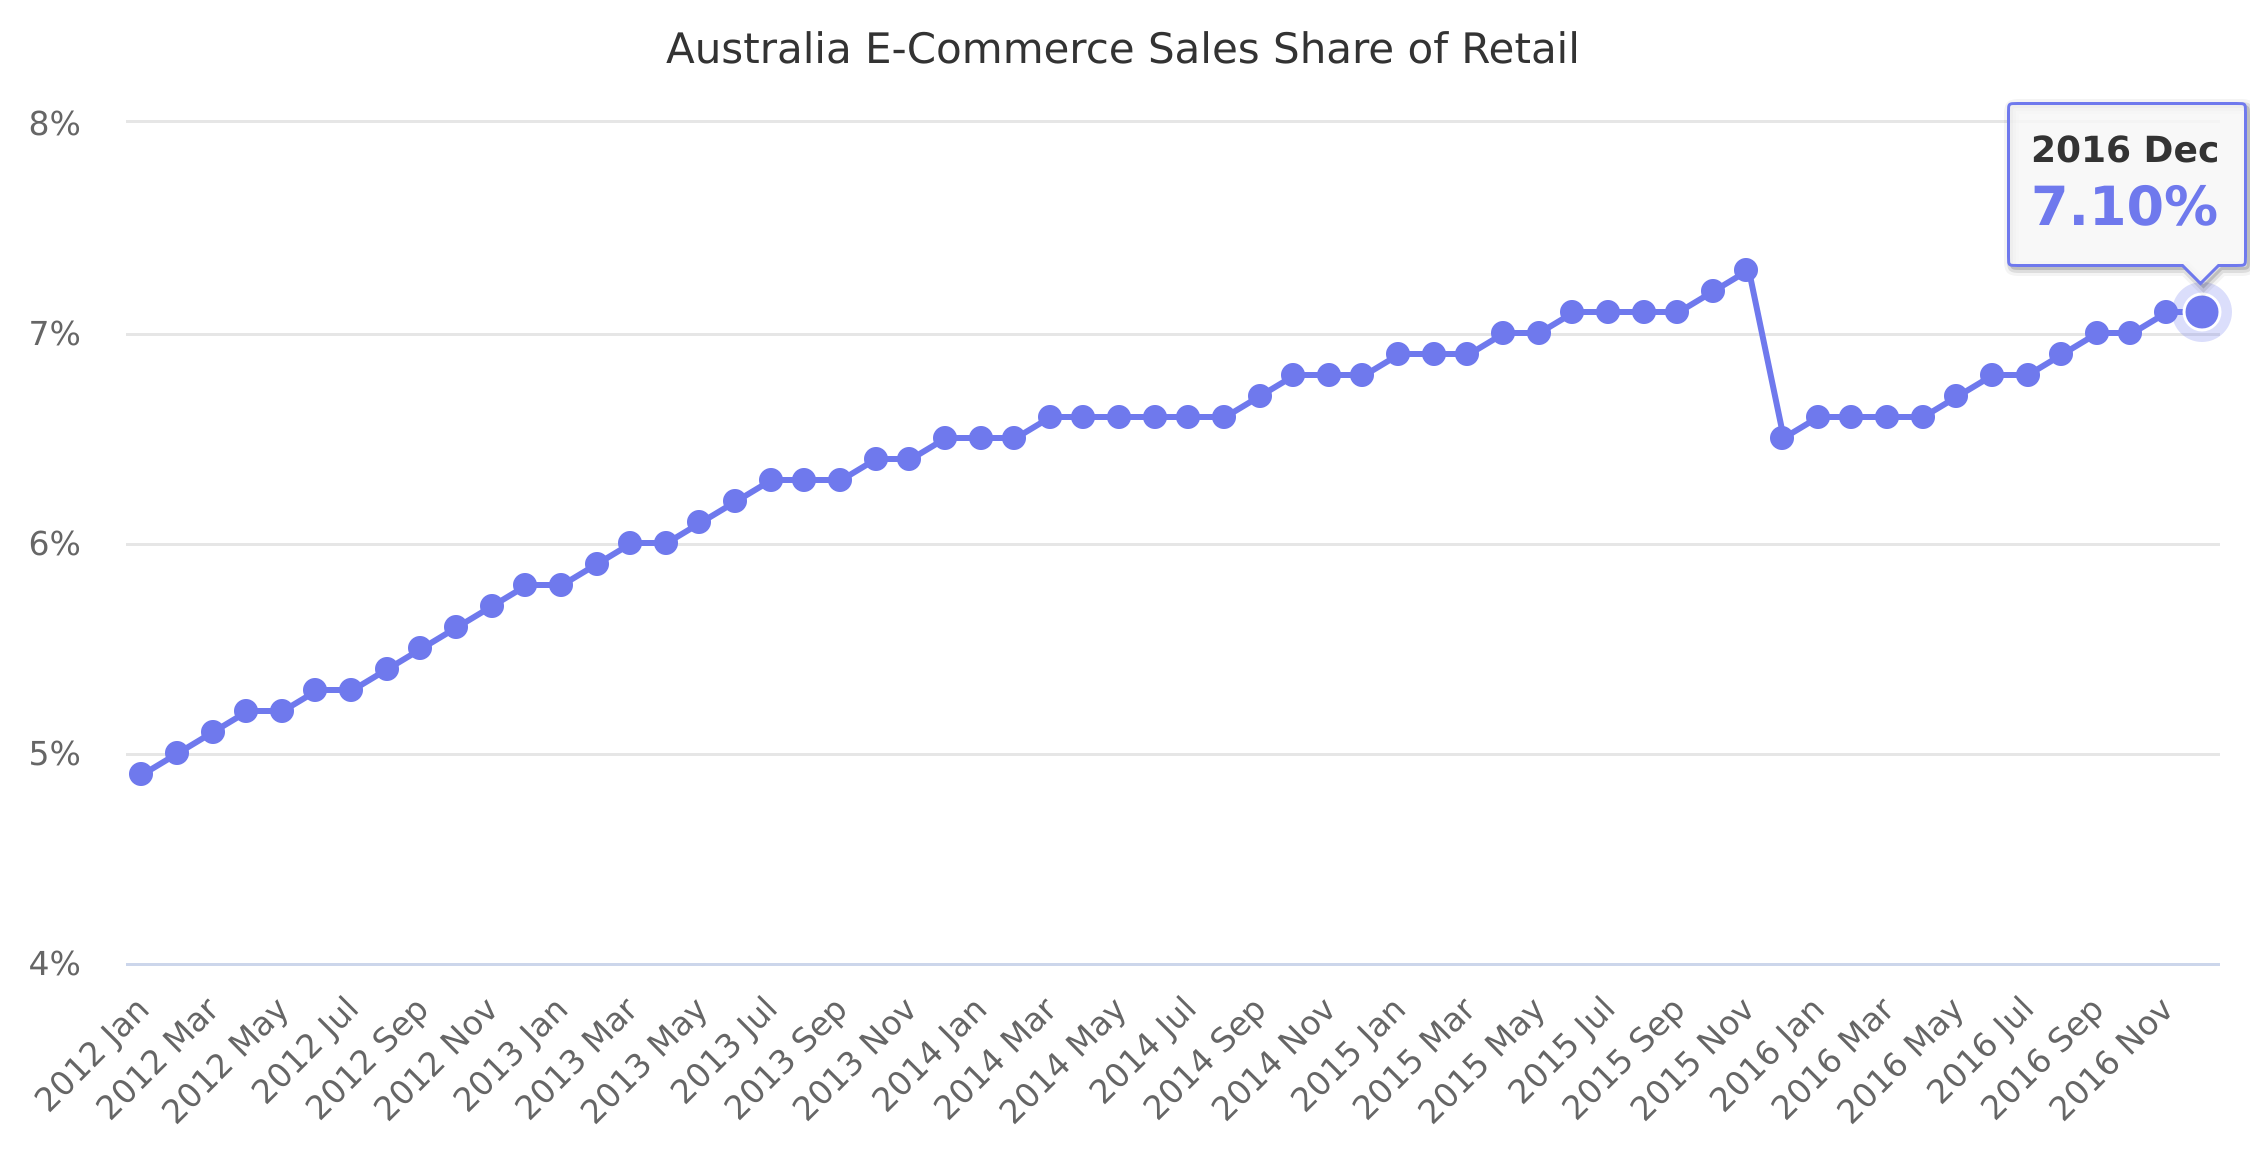 Australia E-Commerce Sales Share of Retail 2012-2016